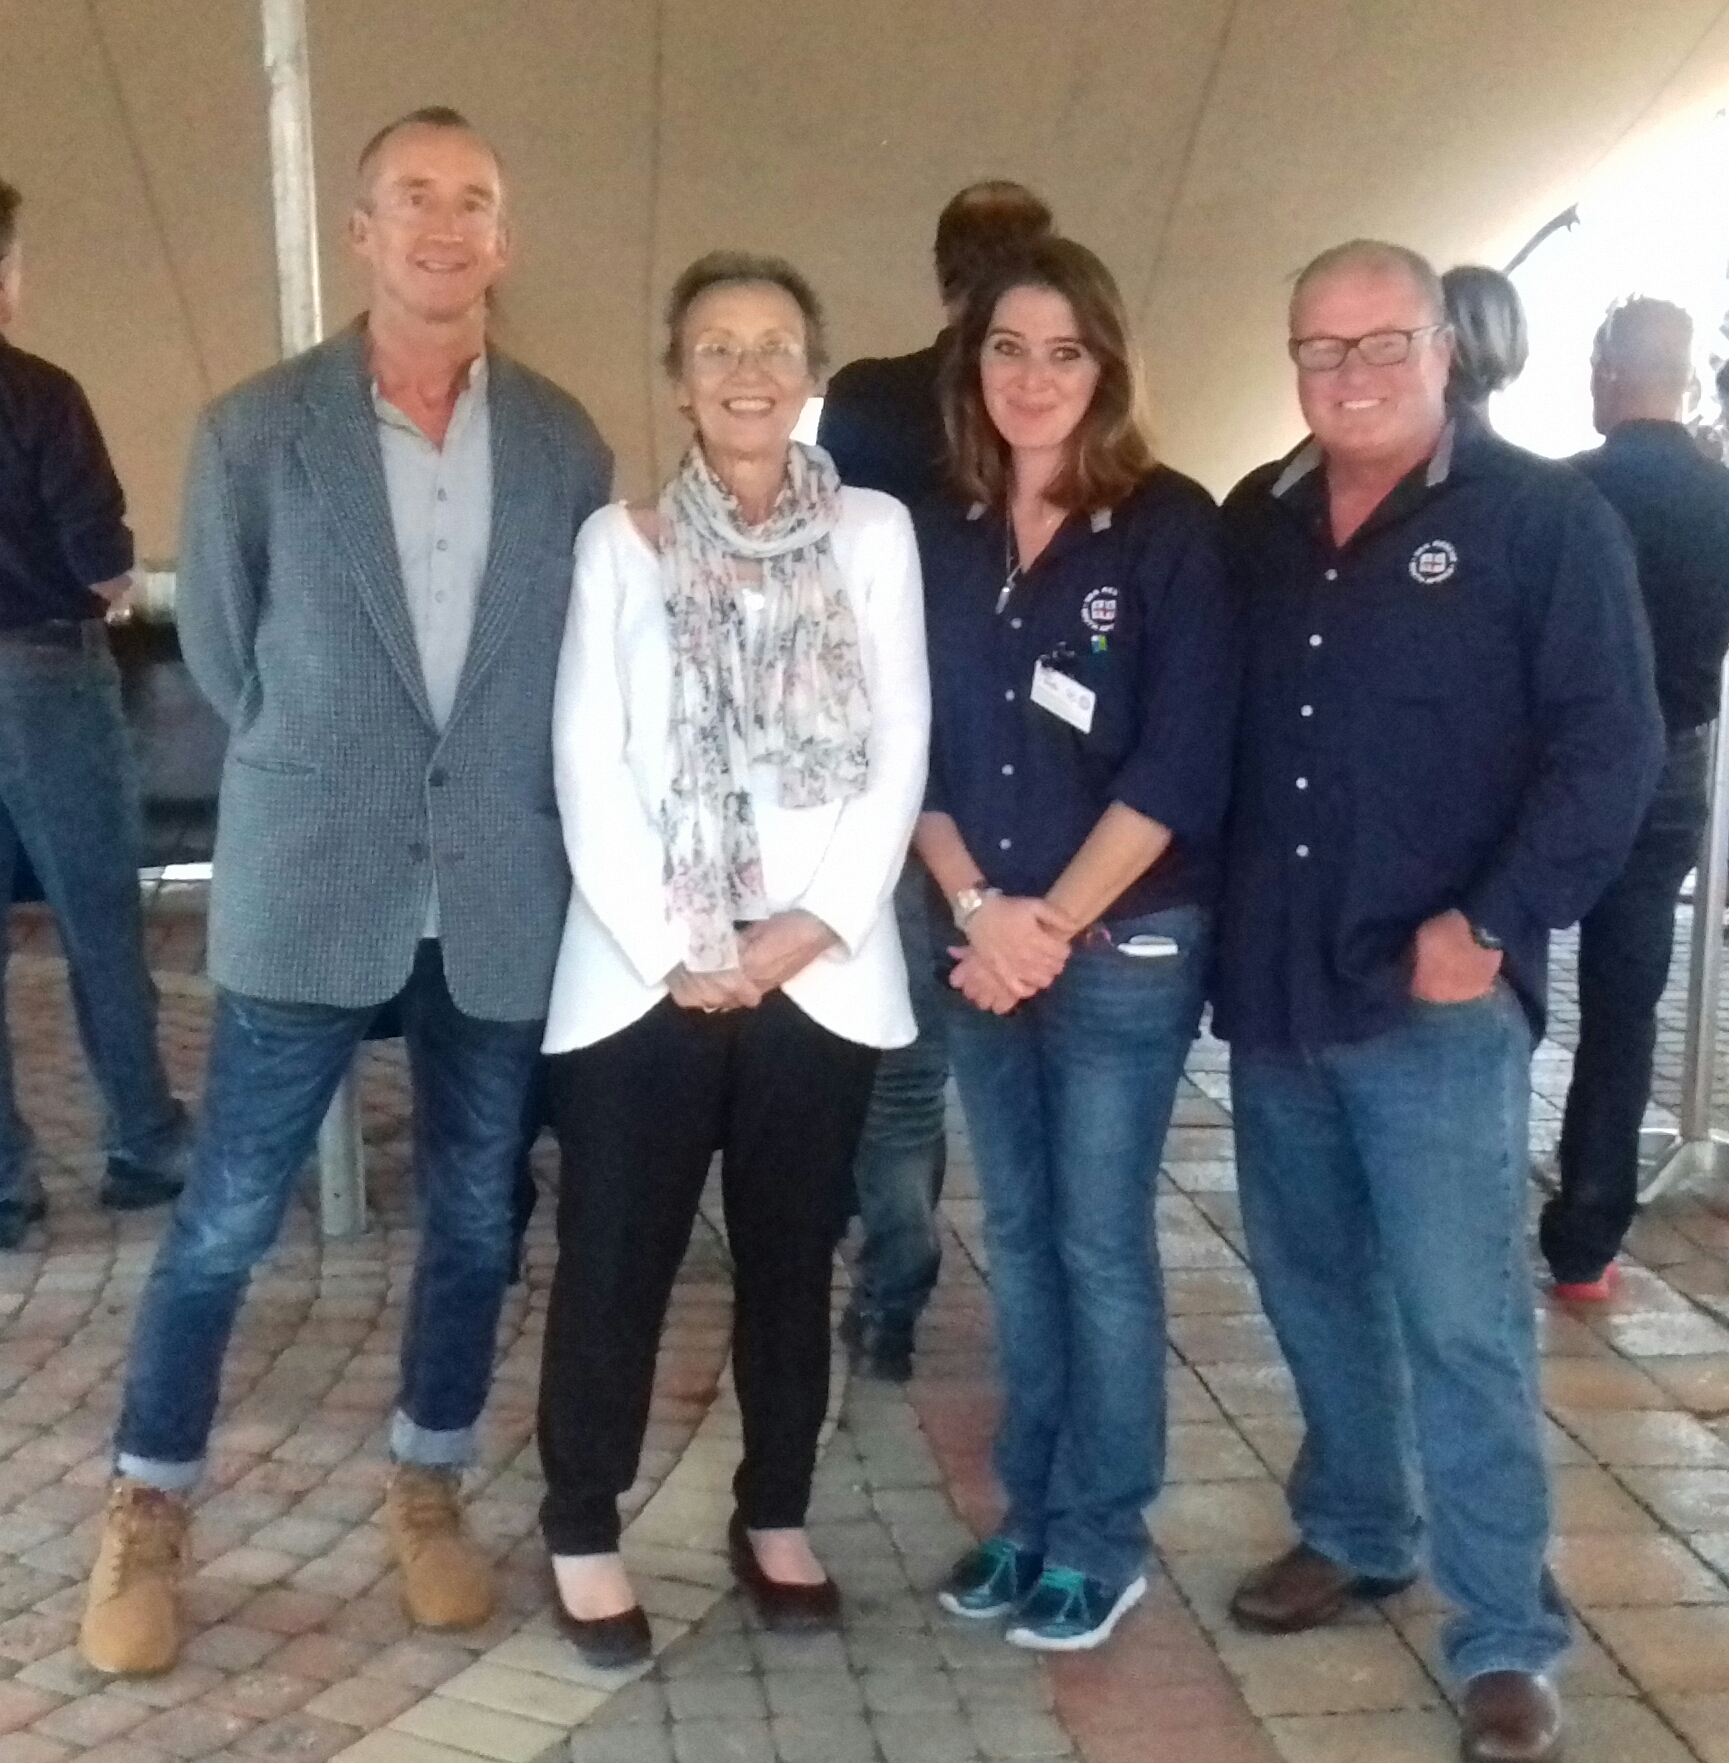 Nevil Hulett, son of Leighton Hulett - founder of St Francis Bay with Executive Mayor Elza van Lingen, NSRI St Francis Station Commander Sara Smith and NSRI Regional Director Justin Erasmus